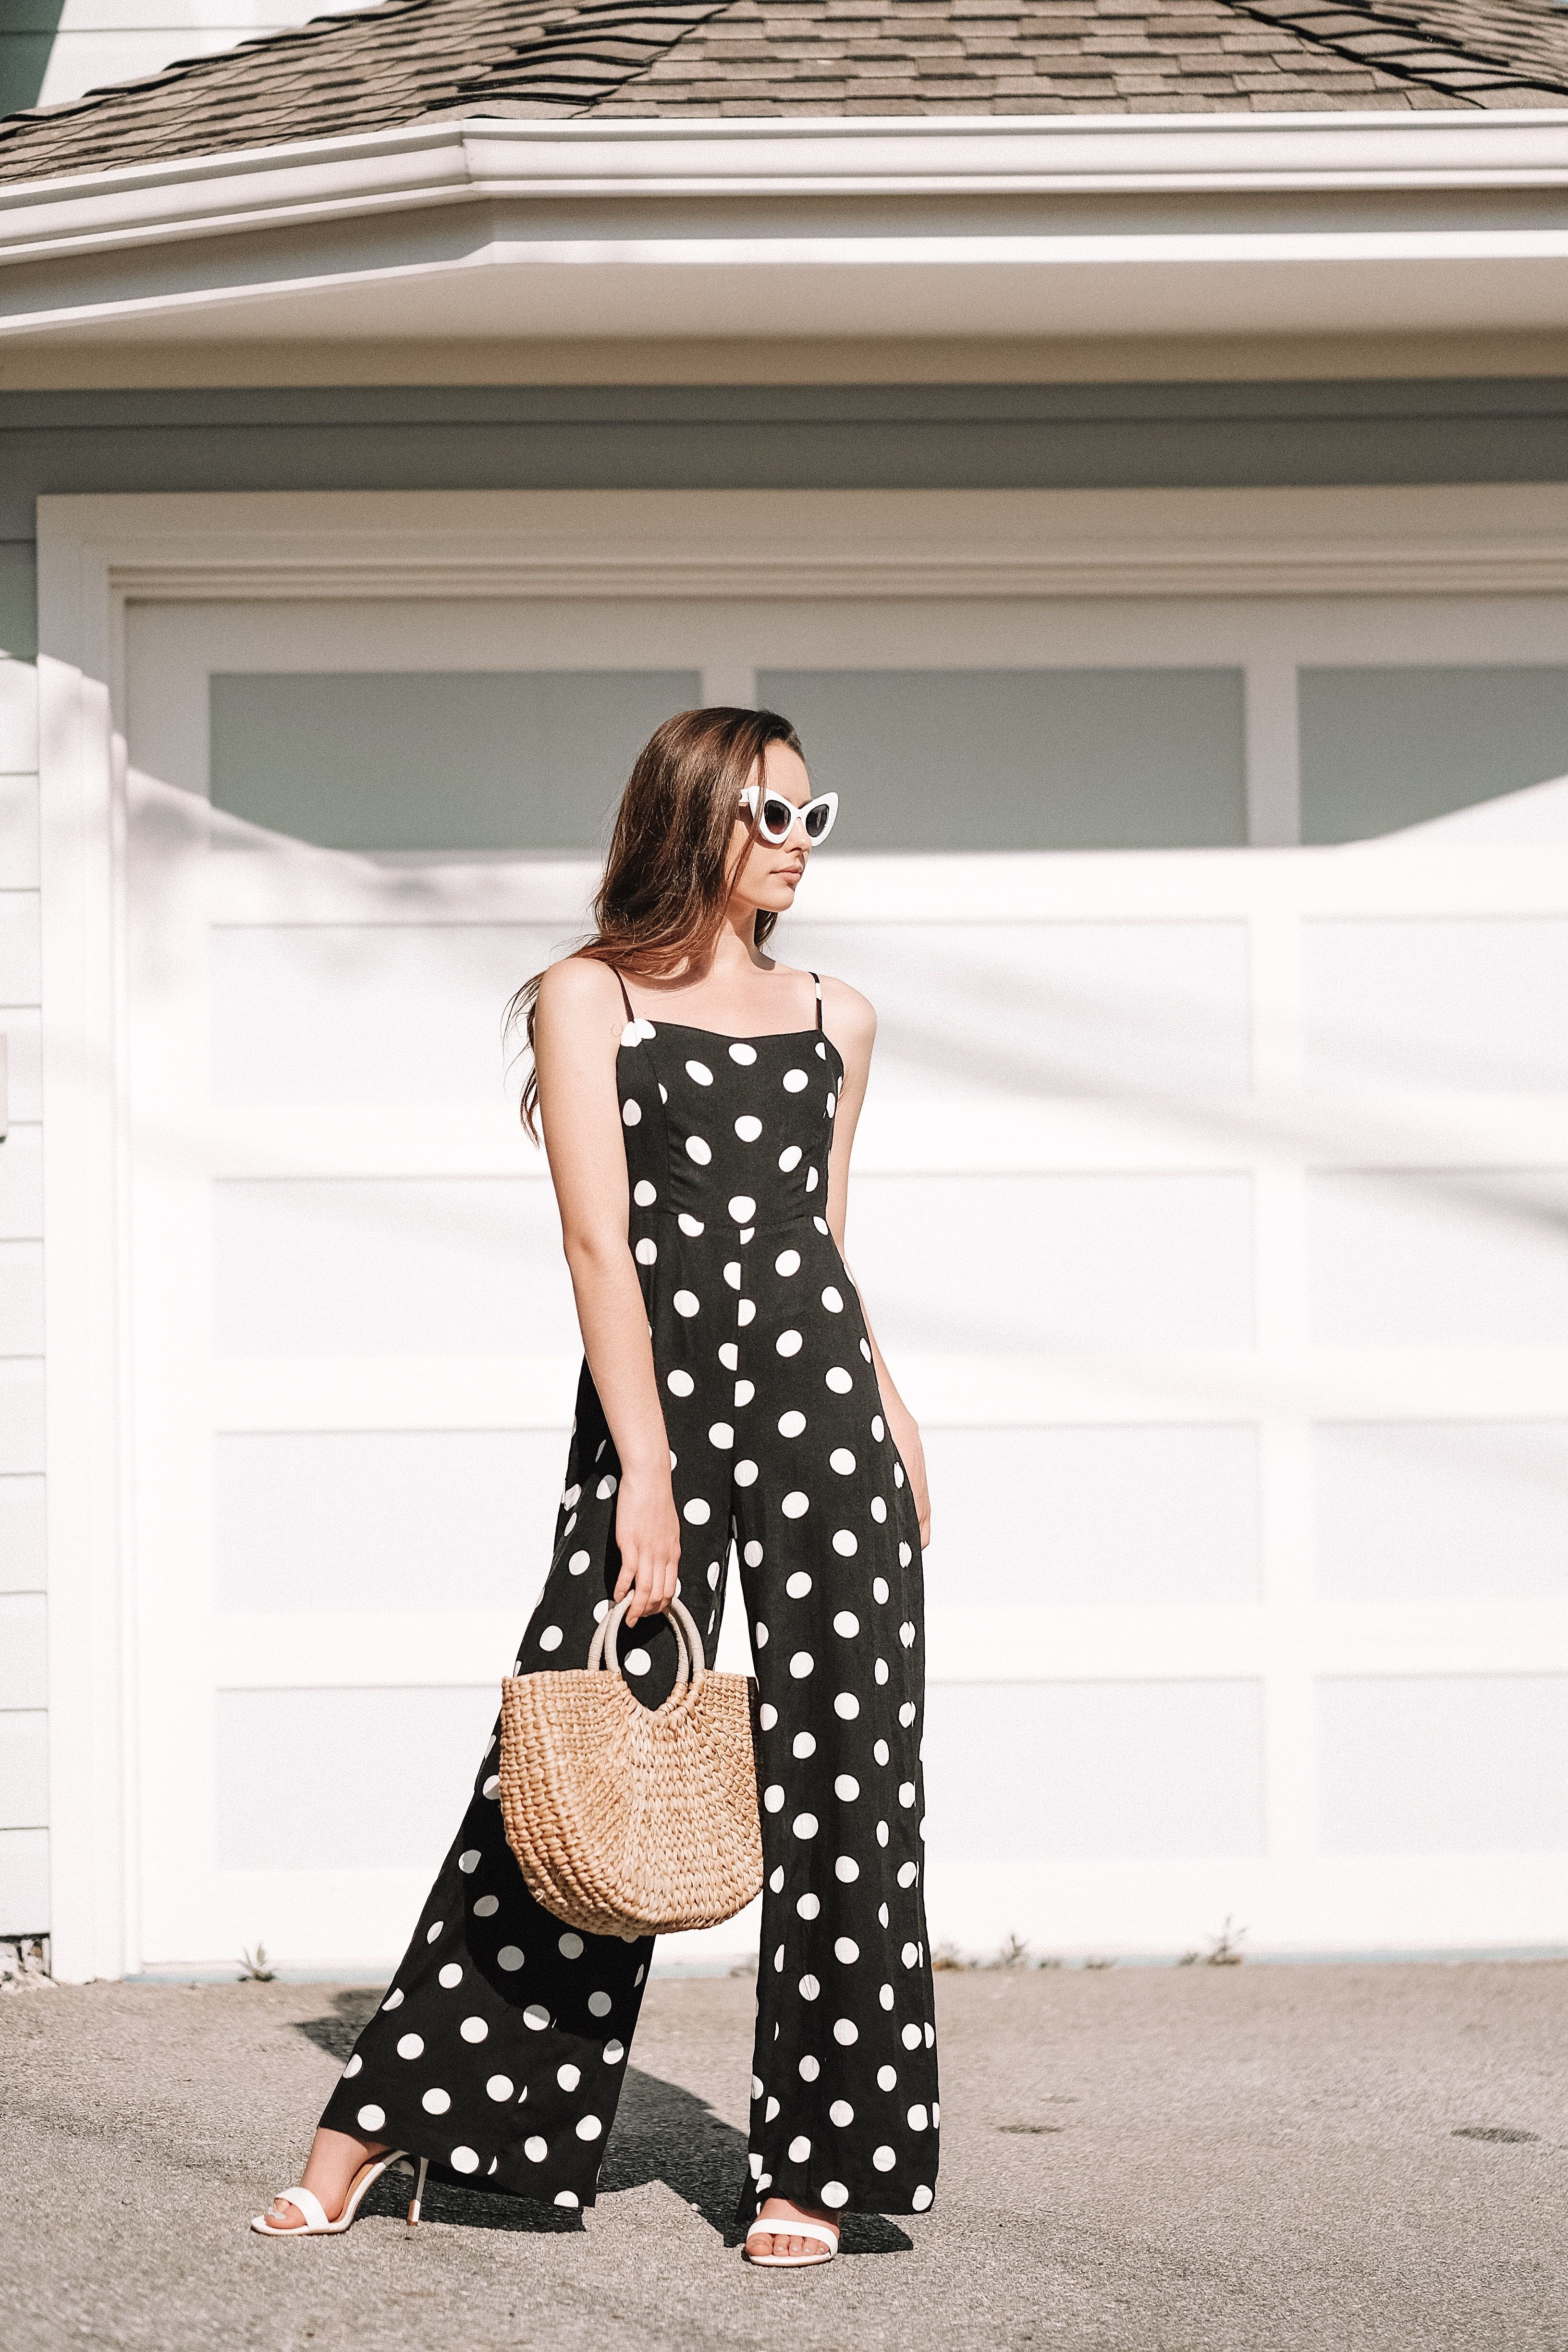 206e5ca1884b Polka dots are the perfect Spring and Summer print! There is something so  fun